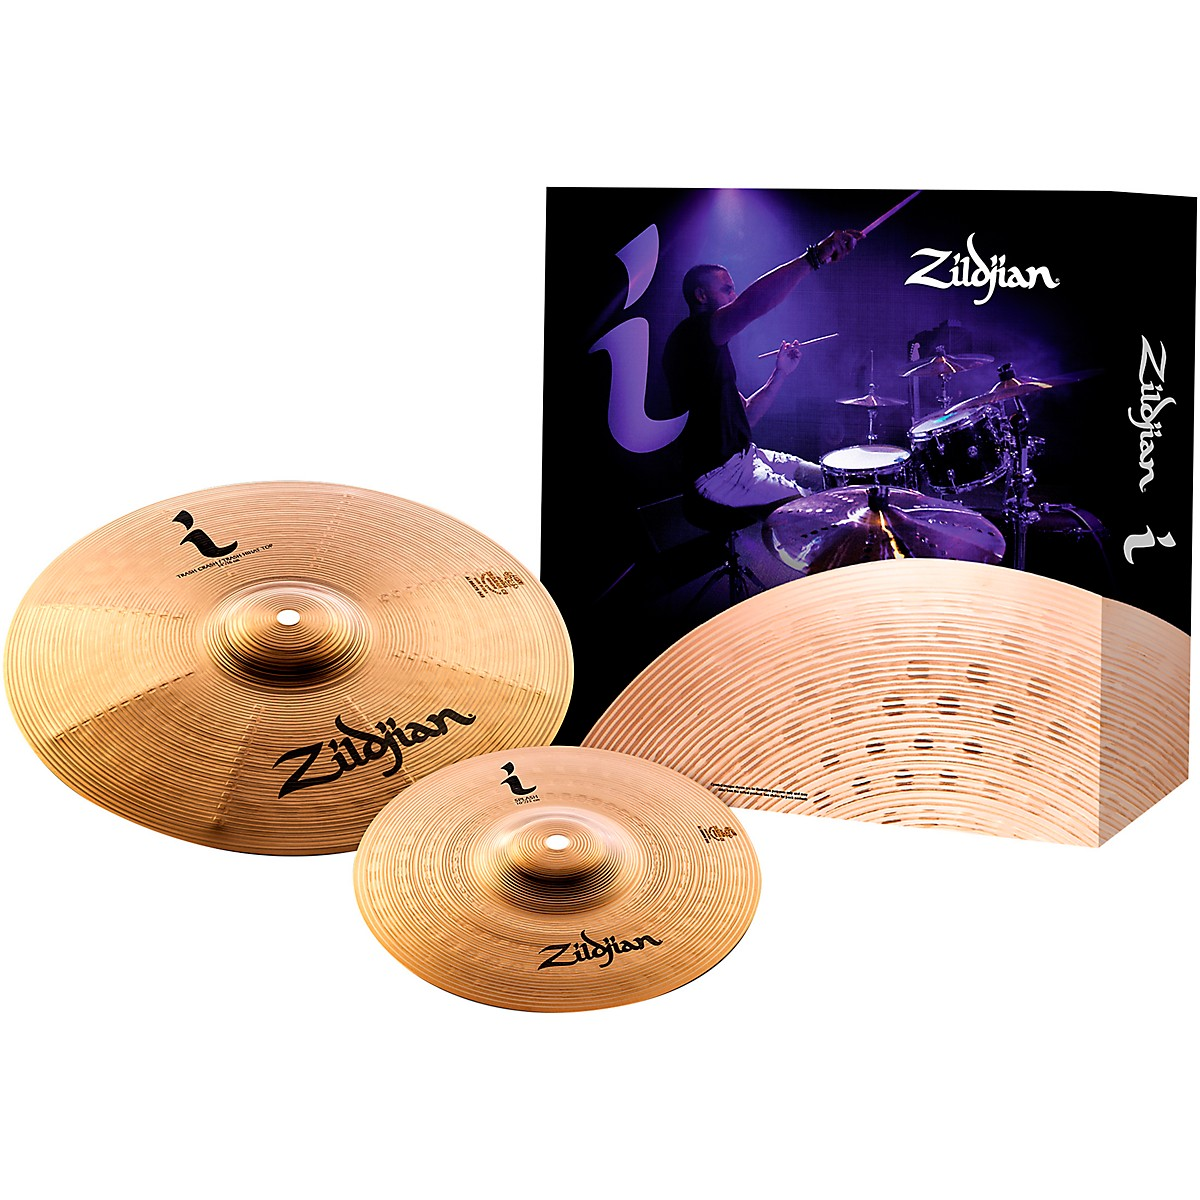 Zildjian I Series Expression Cymbal Pack 1A